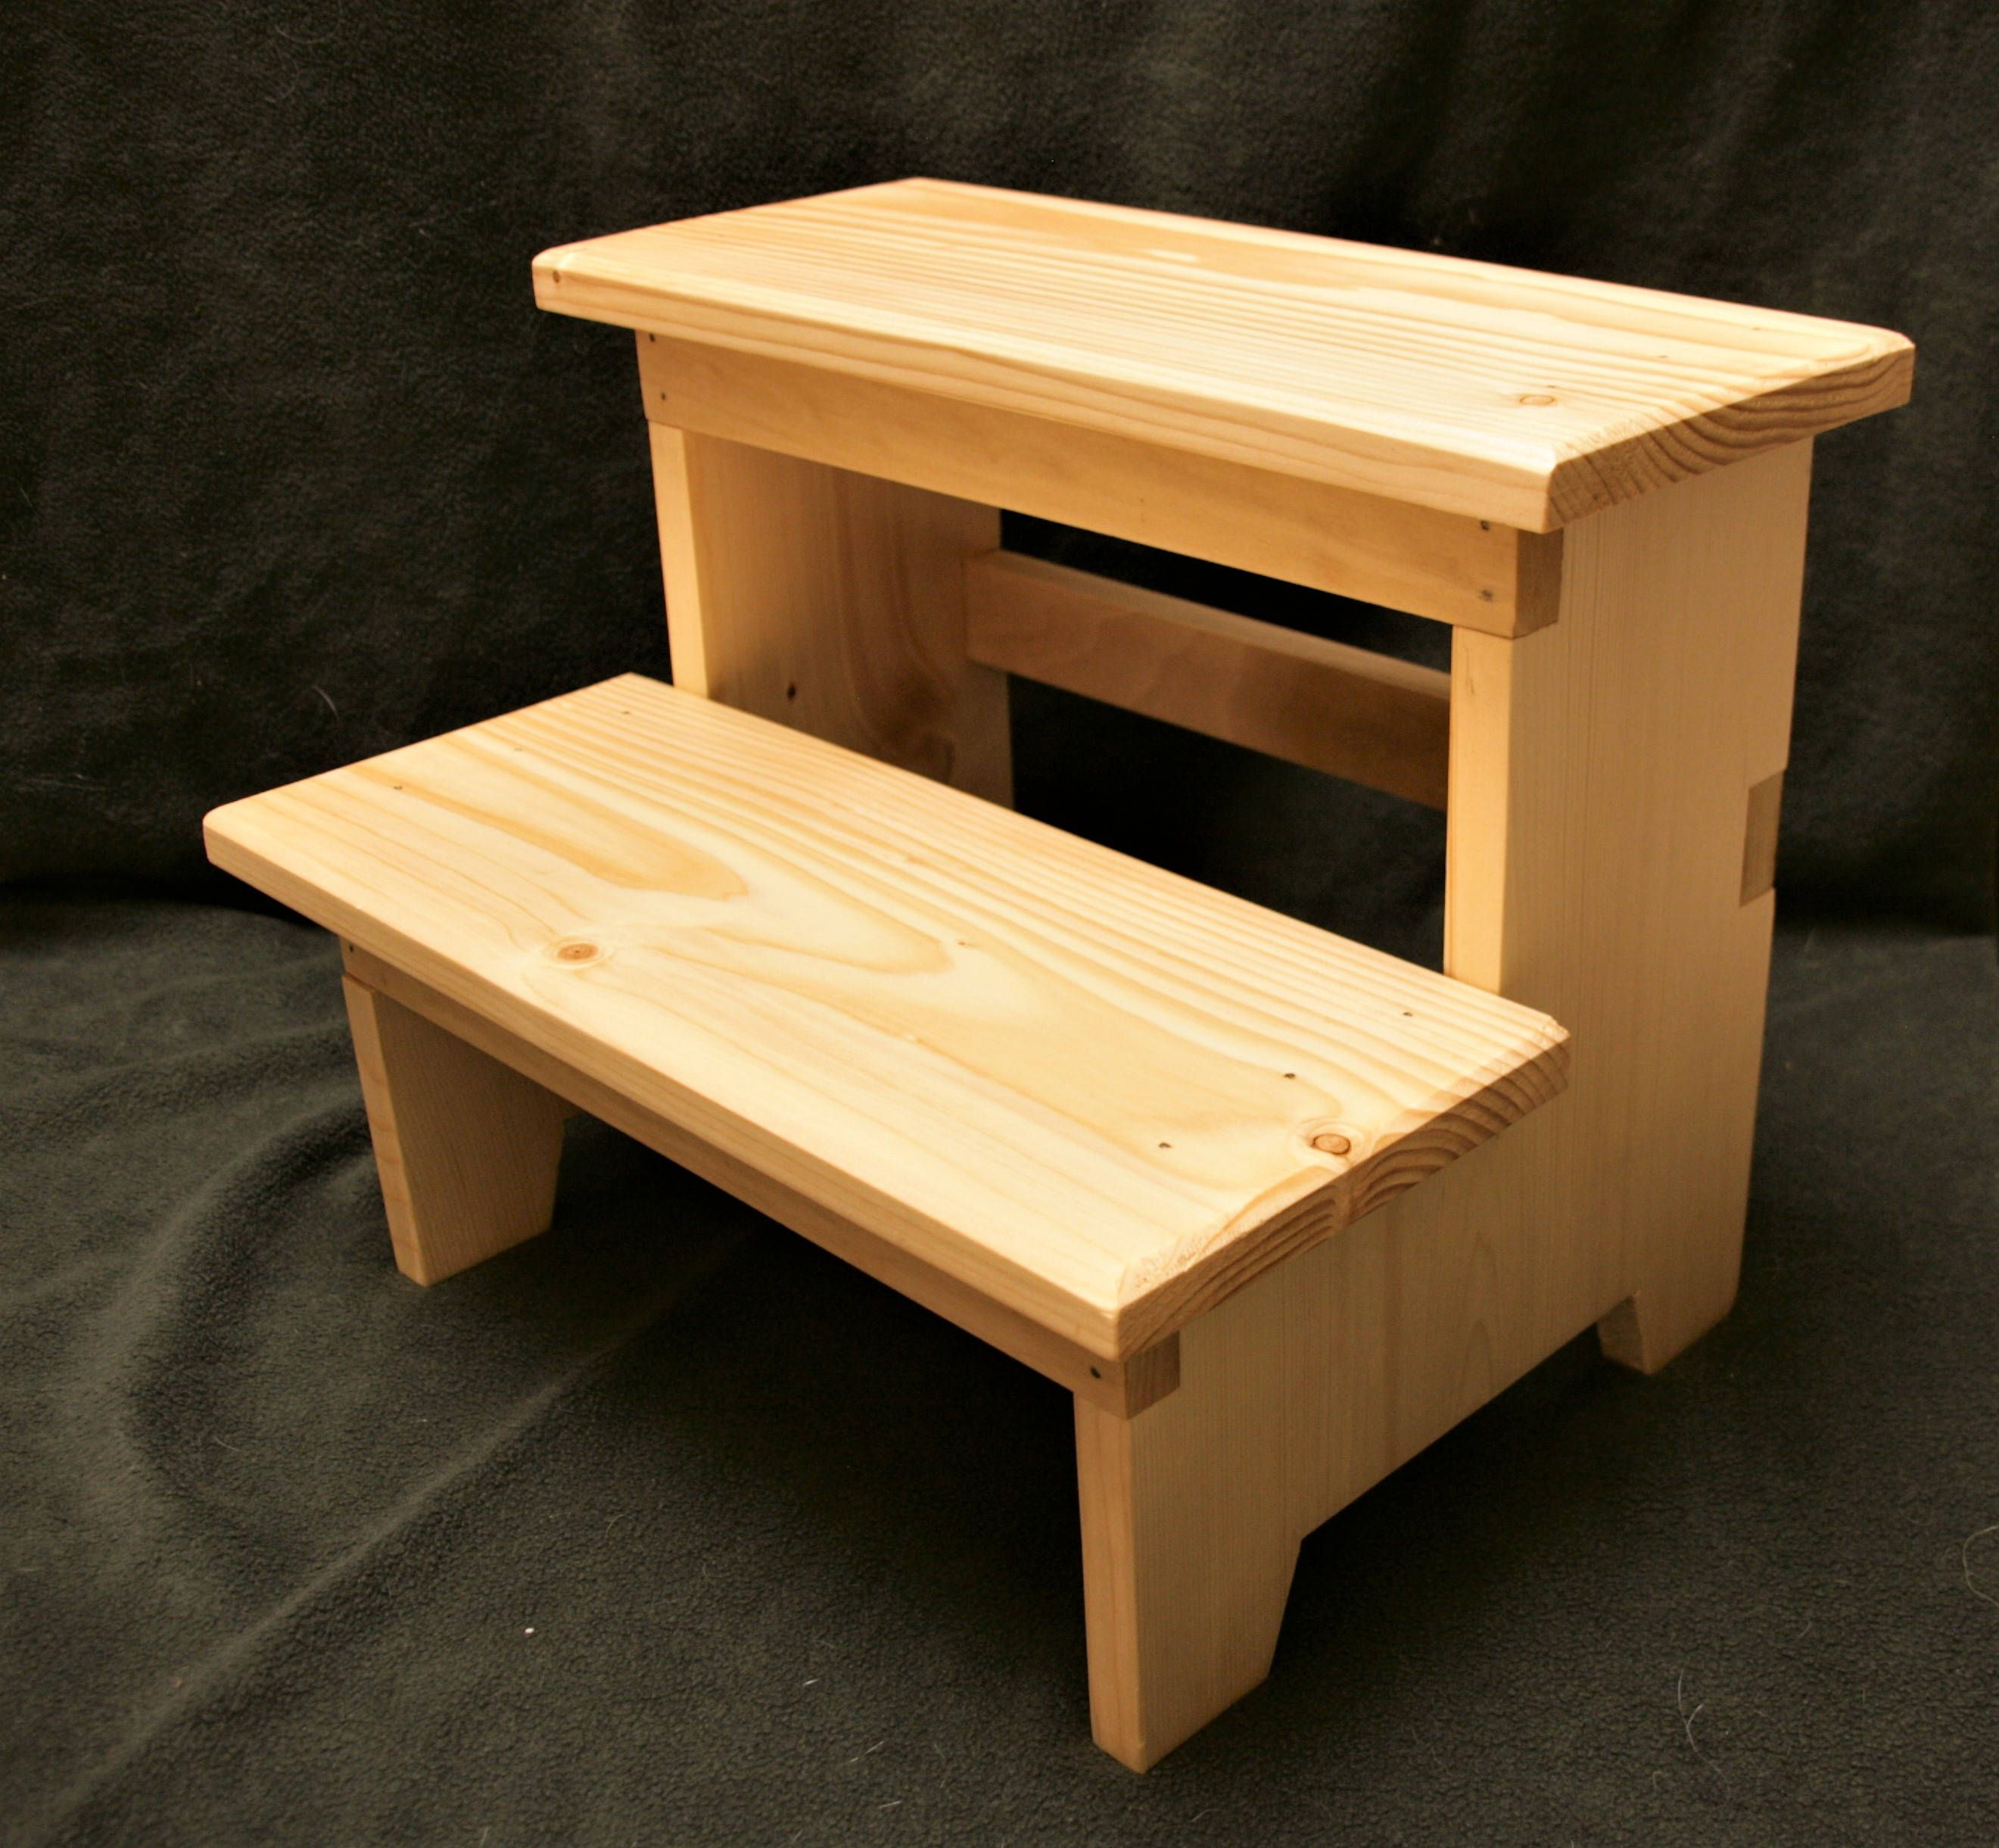 Wood Step Stool Sturdy Step Stool Kids Step Stool Kitchen